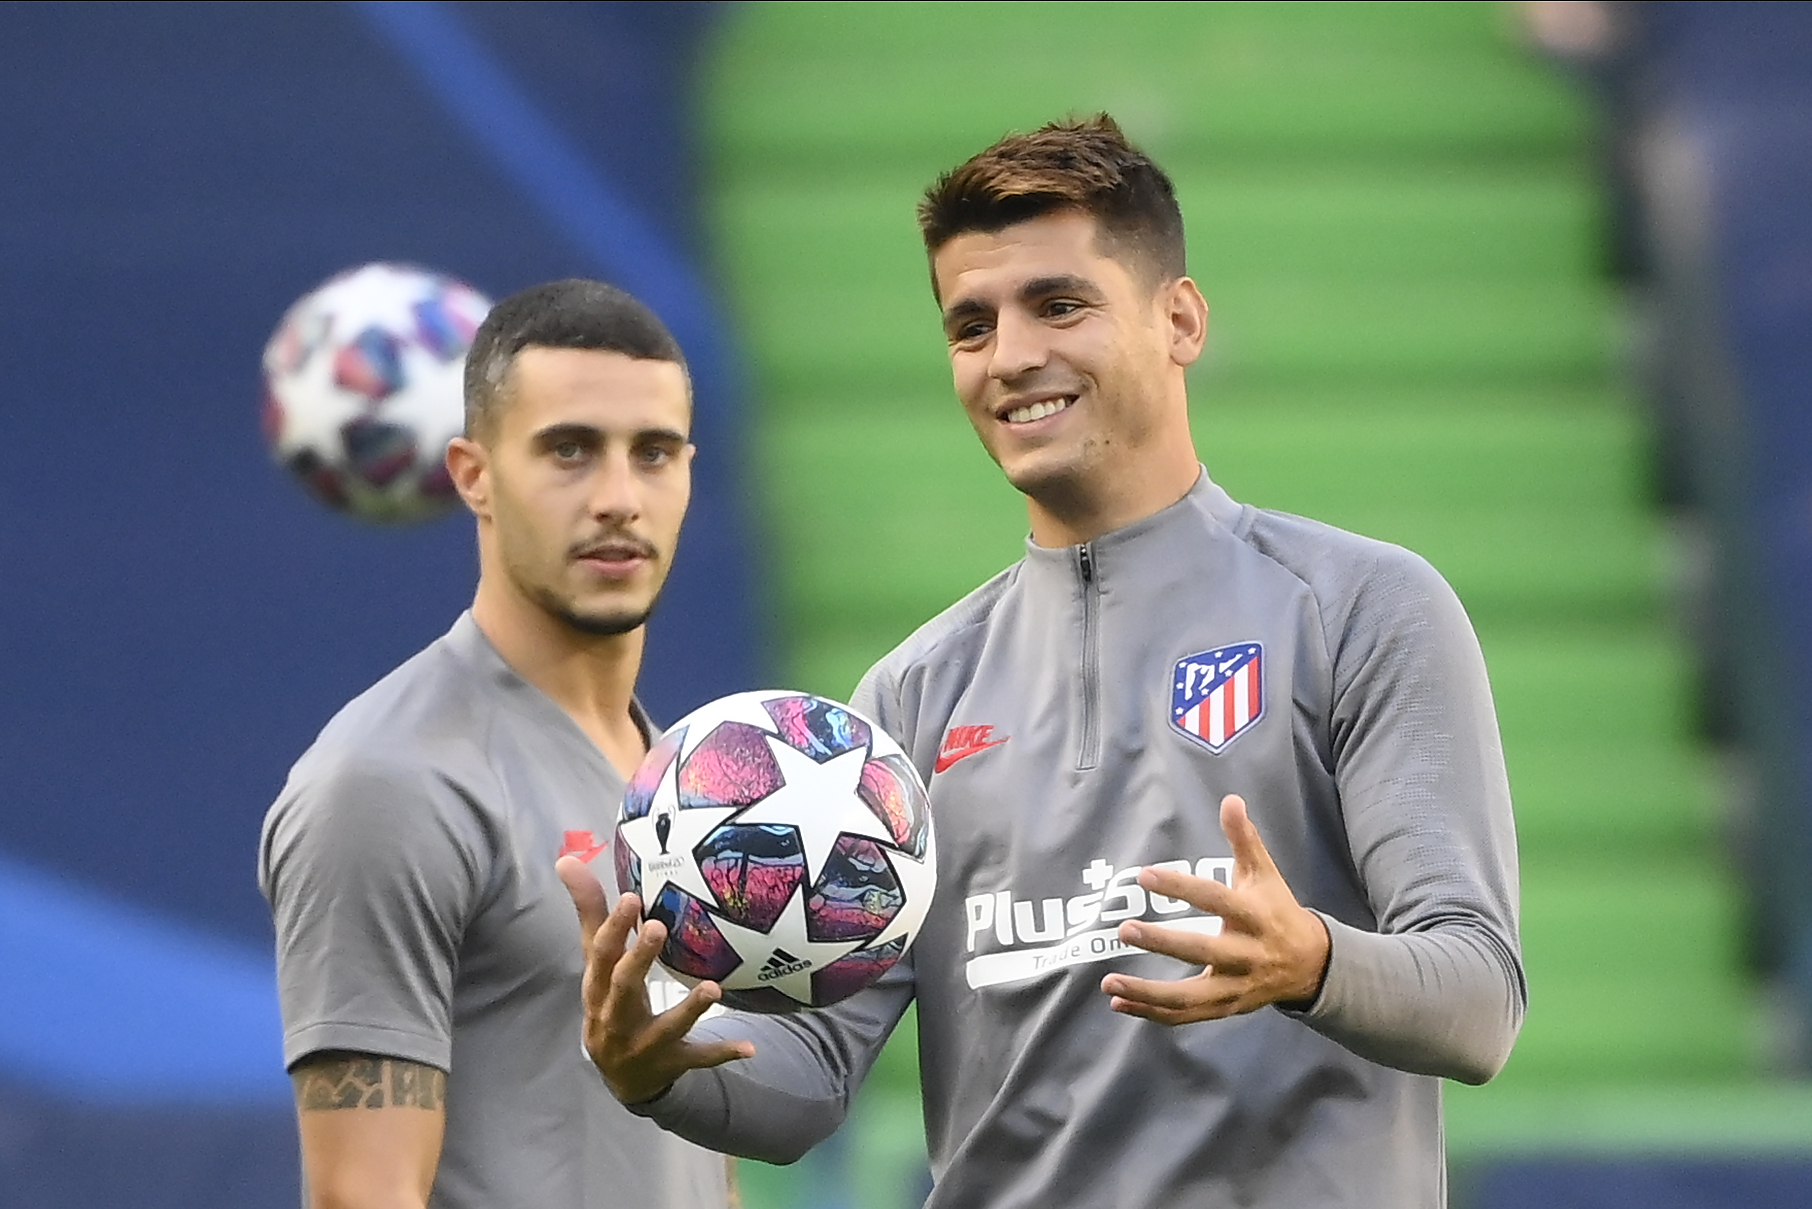 Rb Leipzig Vs Atletico Madrid Live Stream Start Time Tv Channel How To Watch Champions League 2020 Thur Aug 13 Masslive Com